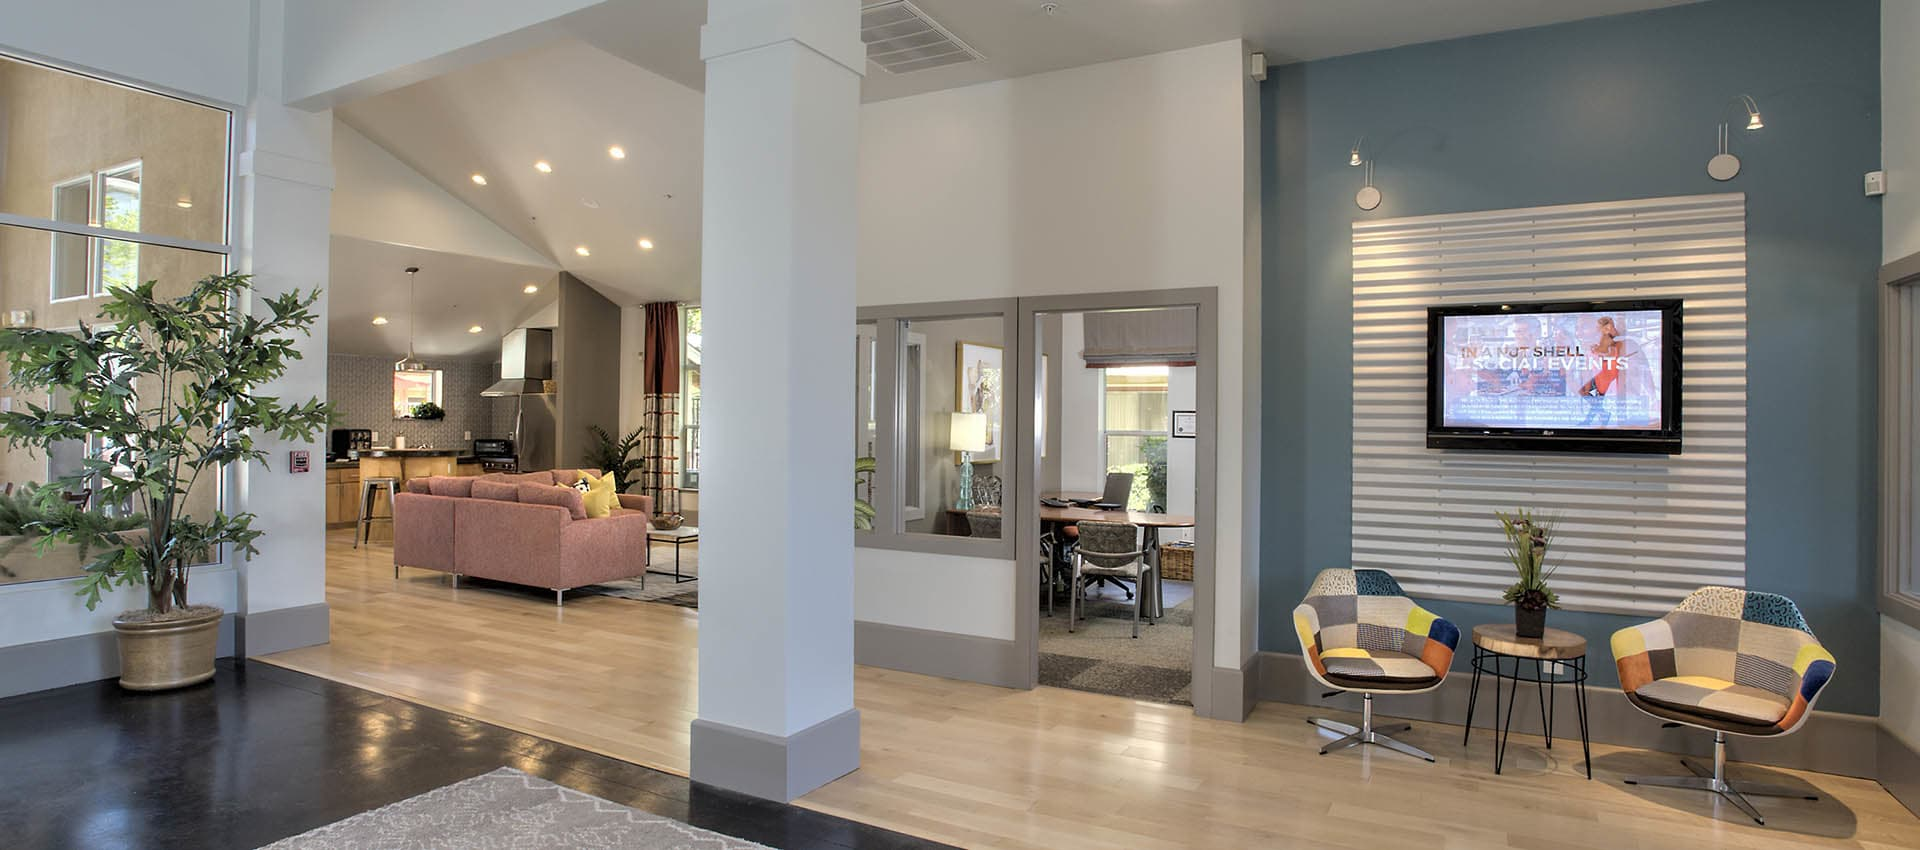 Large Lobby Area at Azure Apartment Homes in Petaluma, California